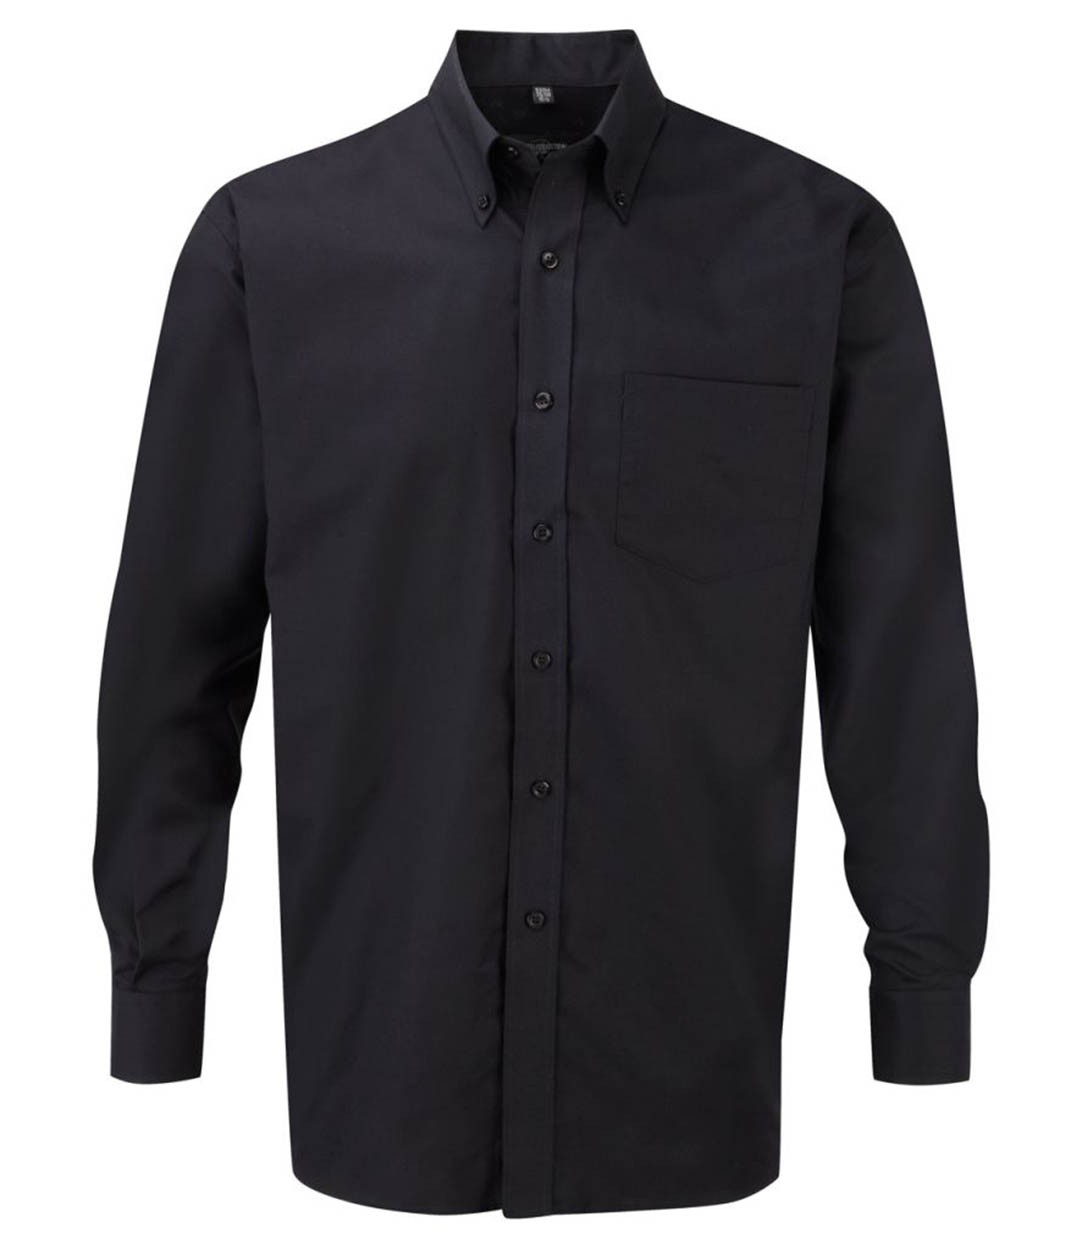 993b6bbf2ad Russell Collection 932M Oxford Long Sleeve Shirt - Long Sleeve ...